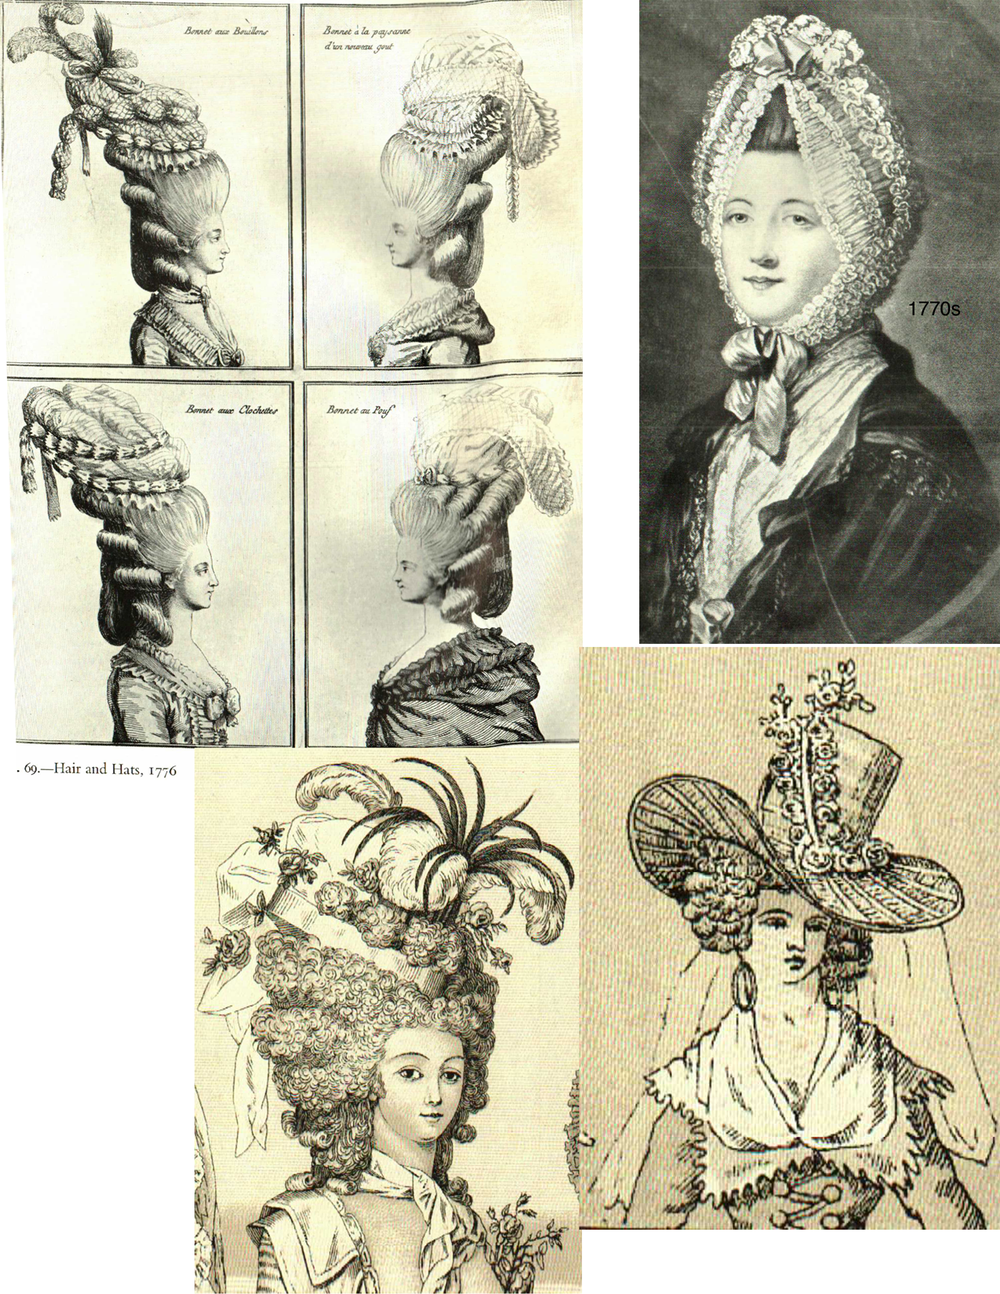 Hats and hair page